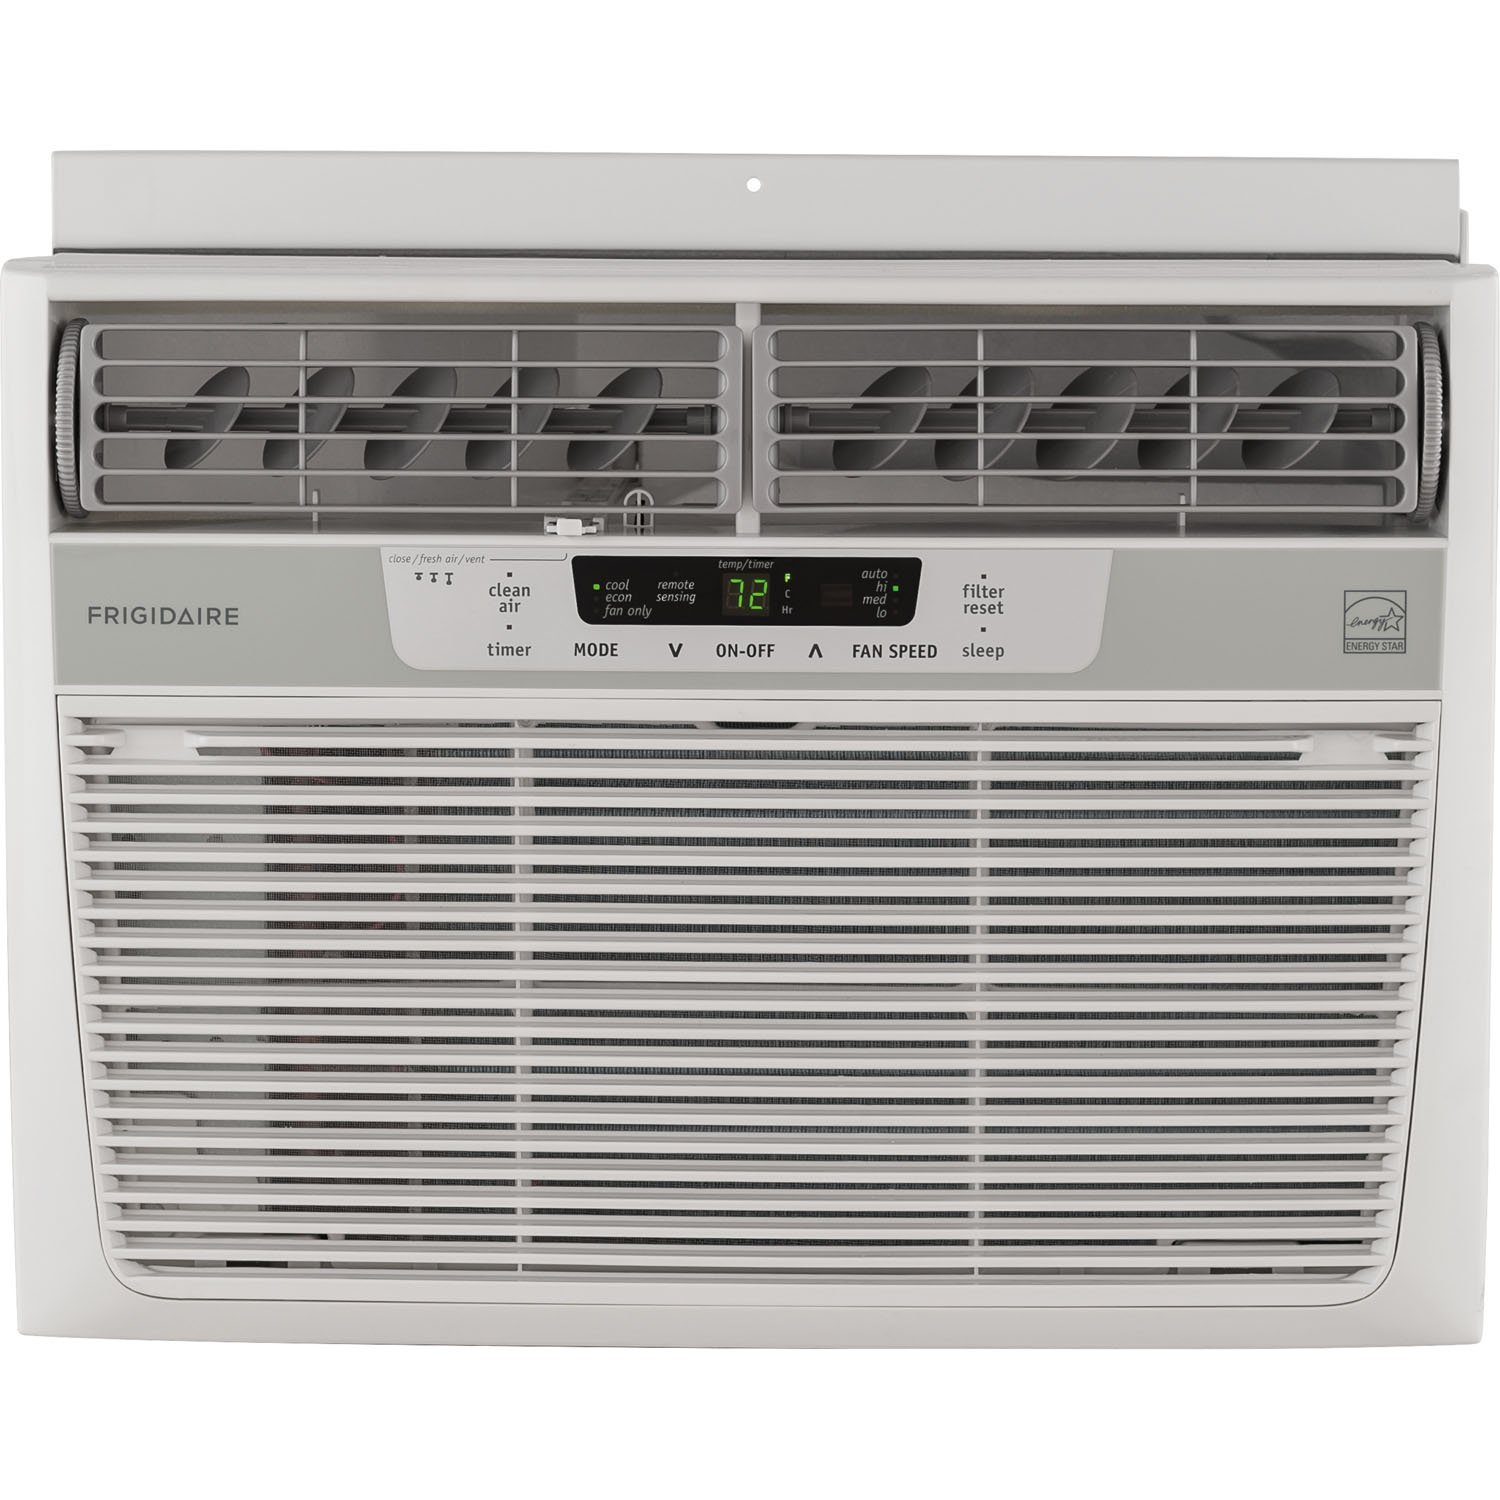 Frigidaire 10,000 BTU 115V Window-Mounted Compact Air Conditioner with Temperature Sensing Remote Control